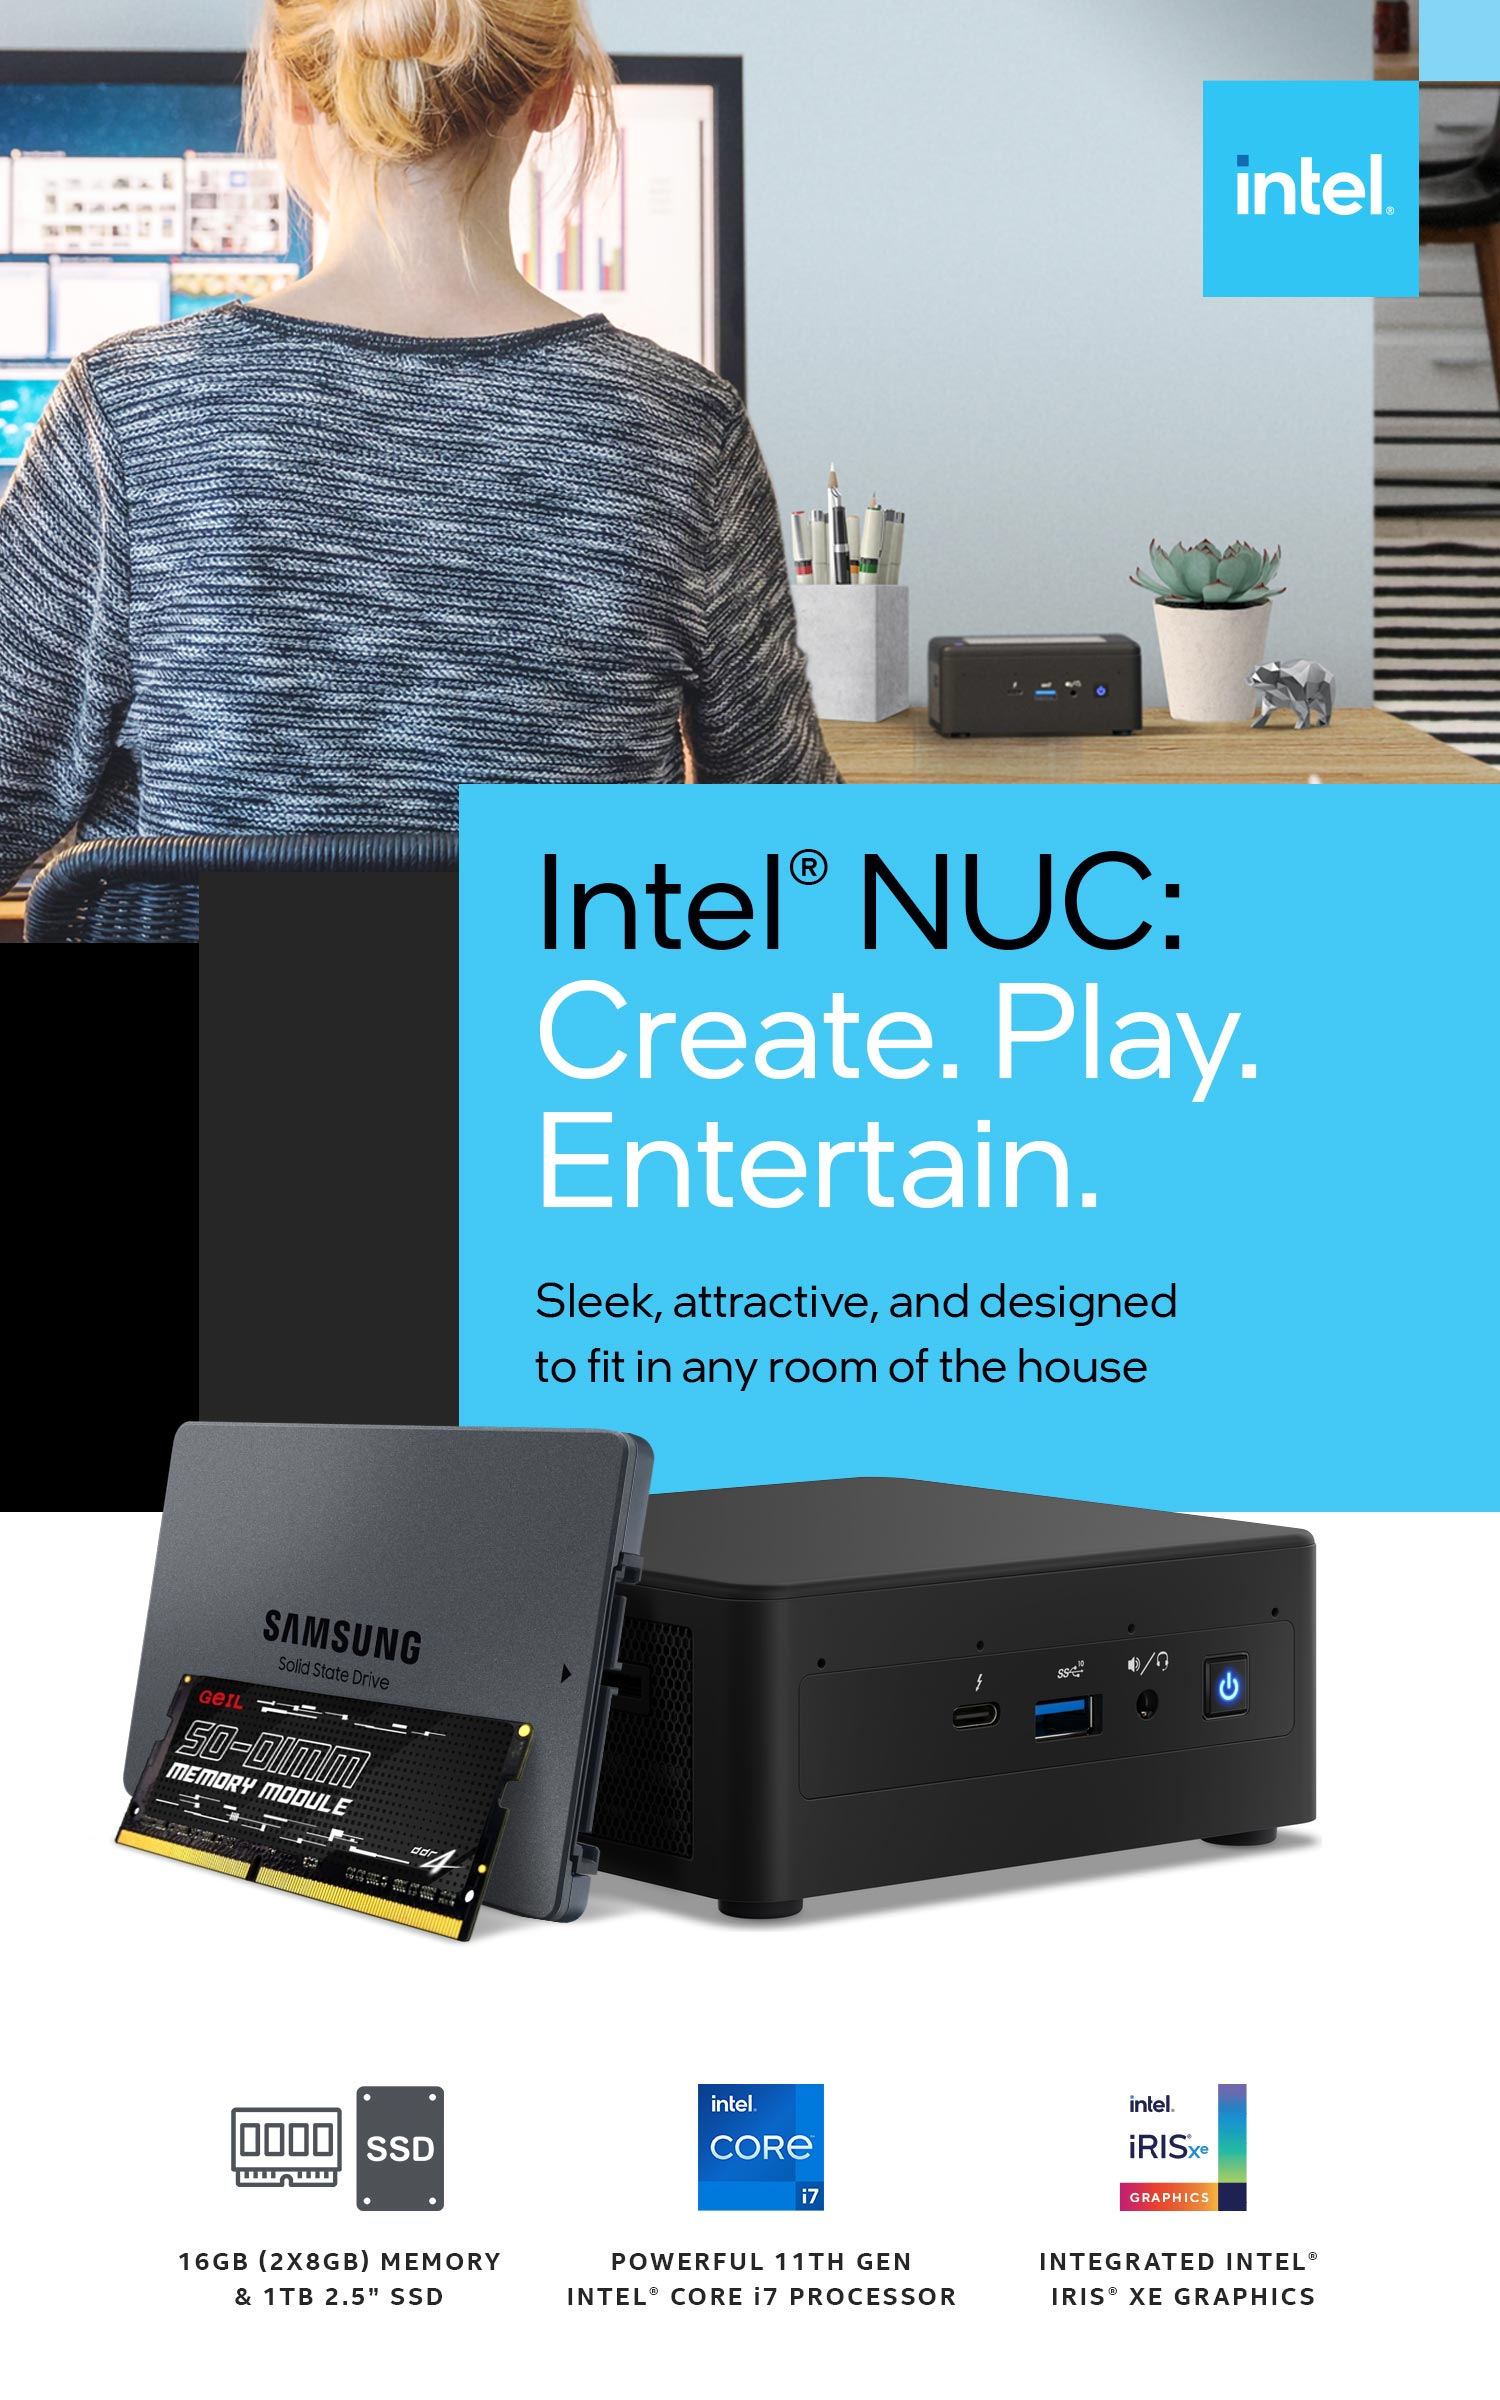 A large marketing image providing additional information about the product Intel 11th Gen i7 NUC DIY Starter Bundle - Additional alt info not provided